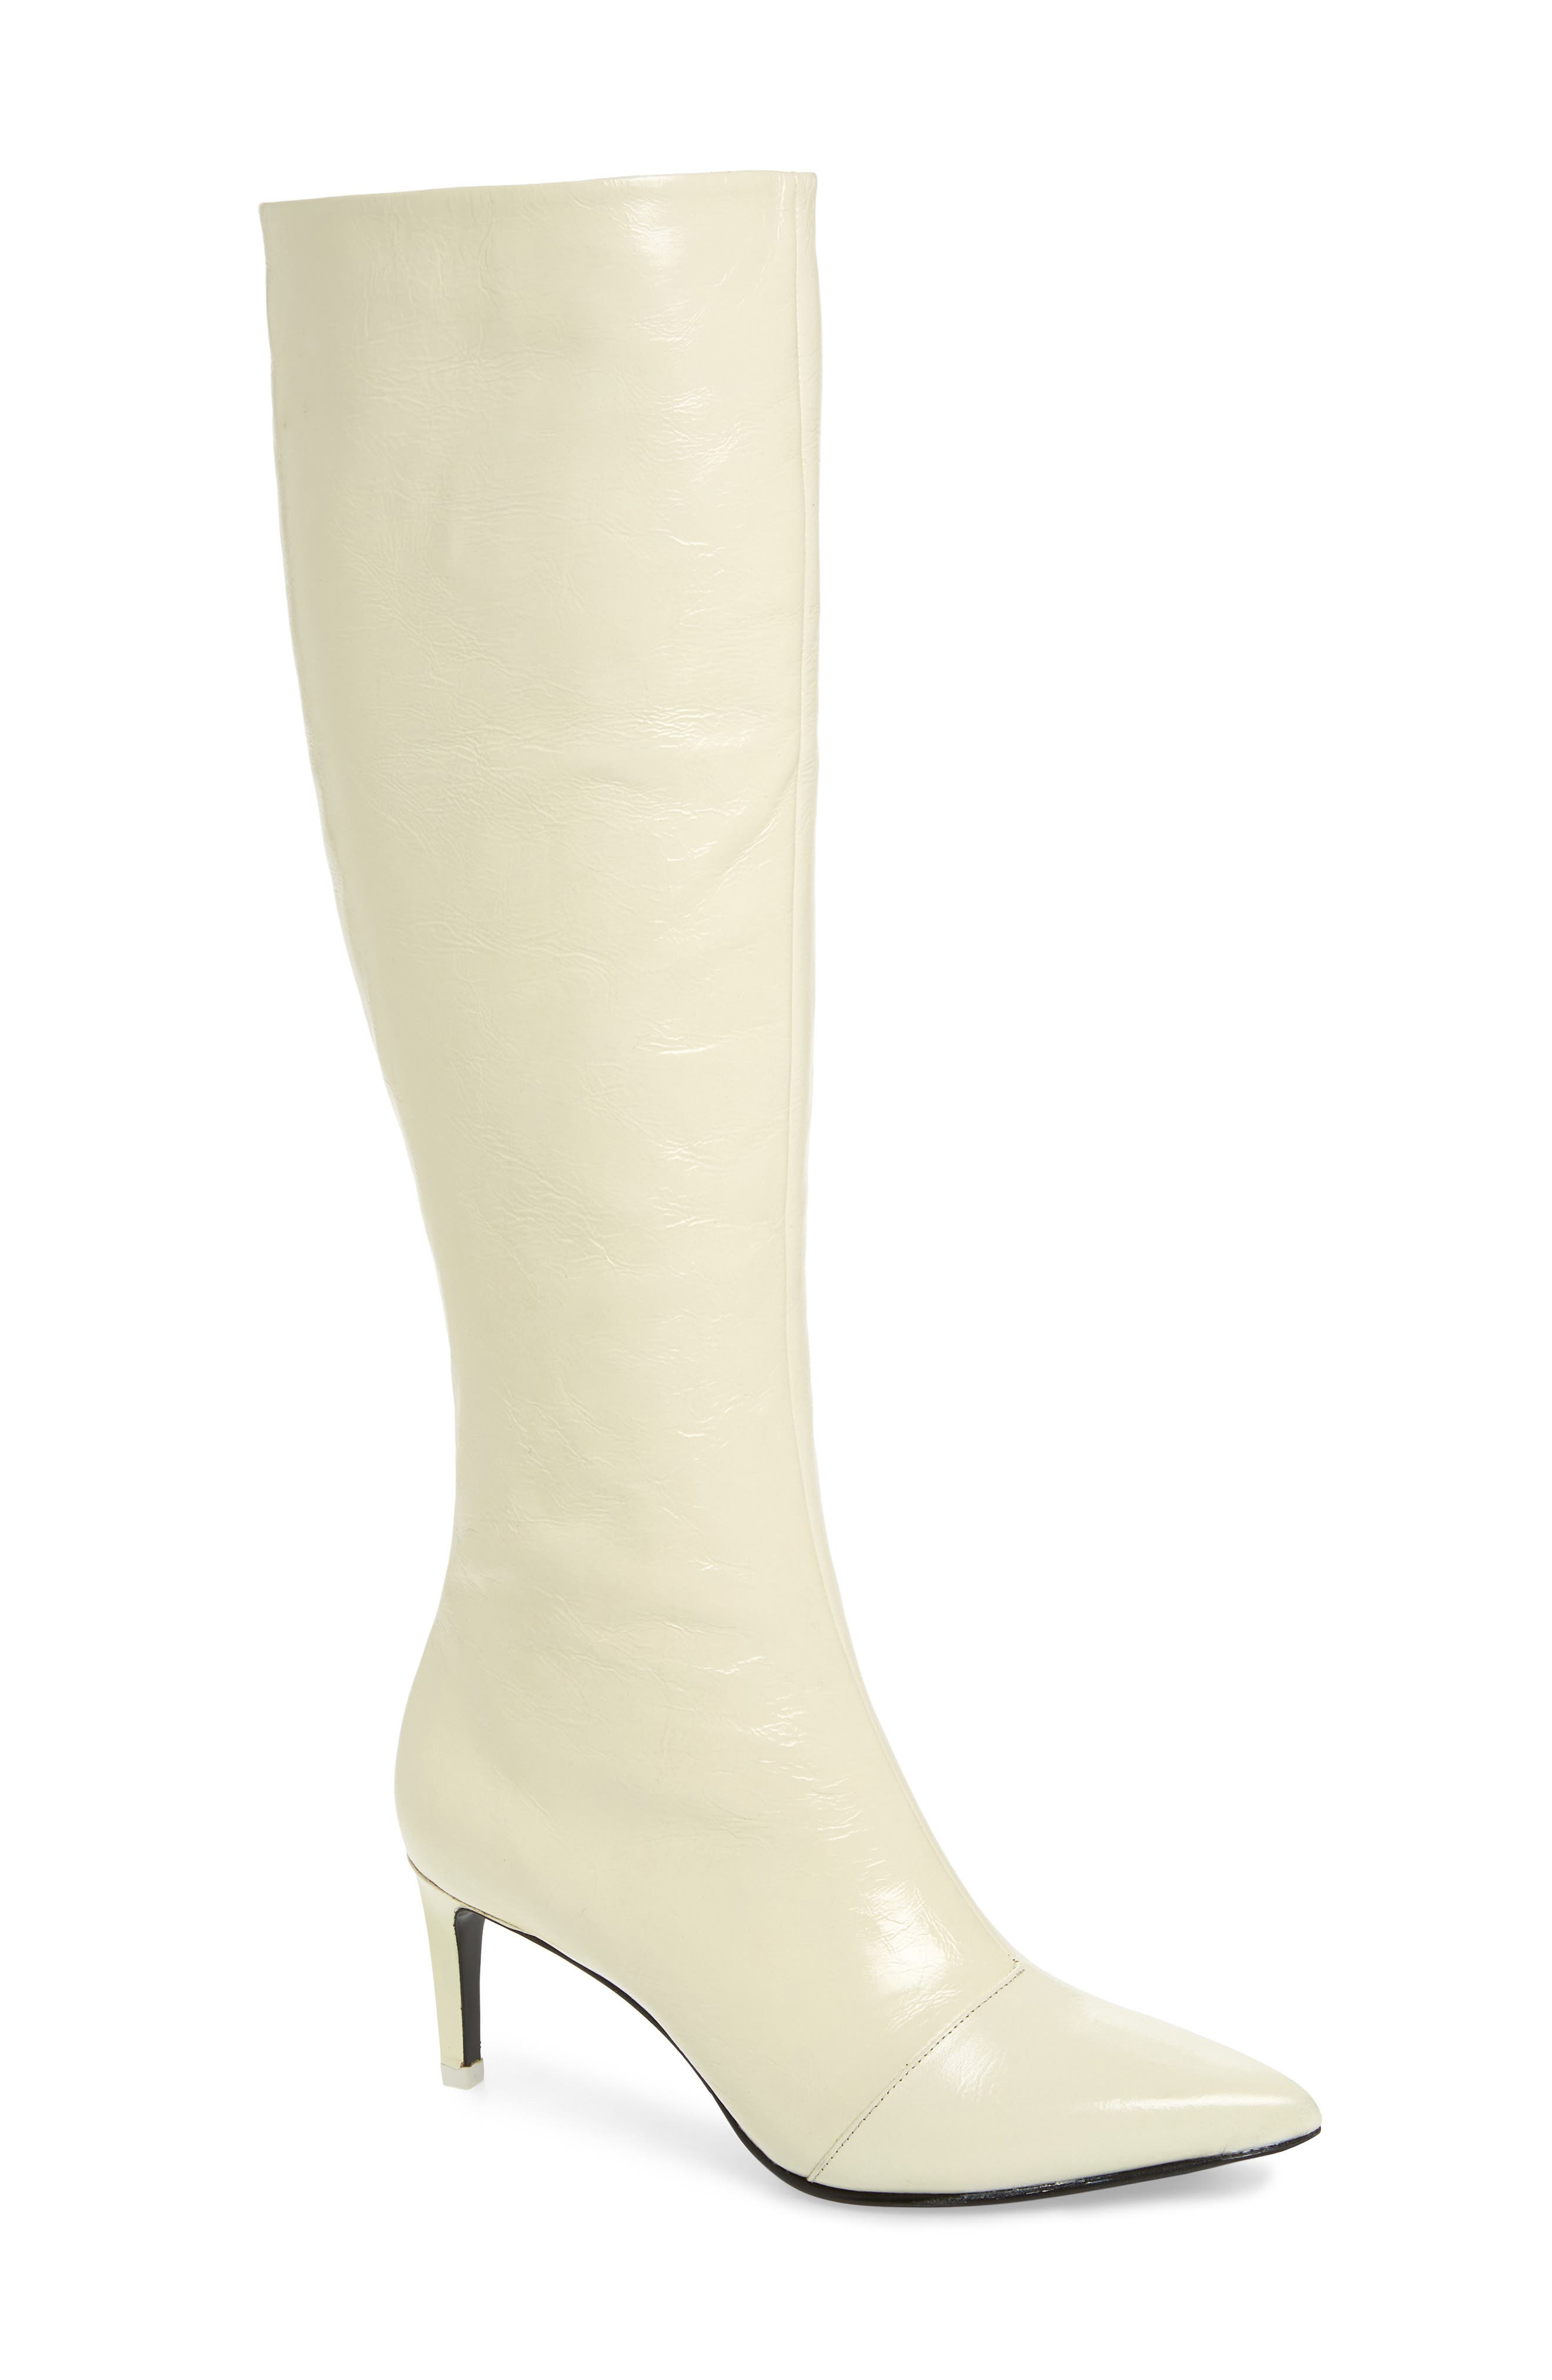 Rag & Bone Beha Knee High Boot - White